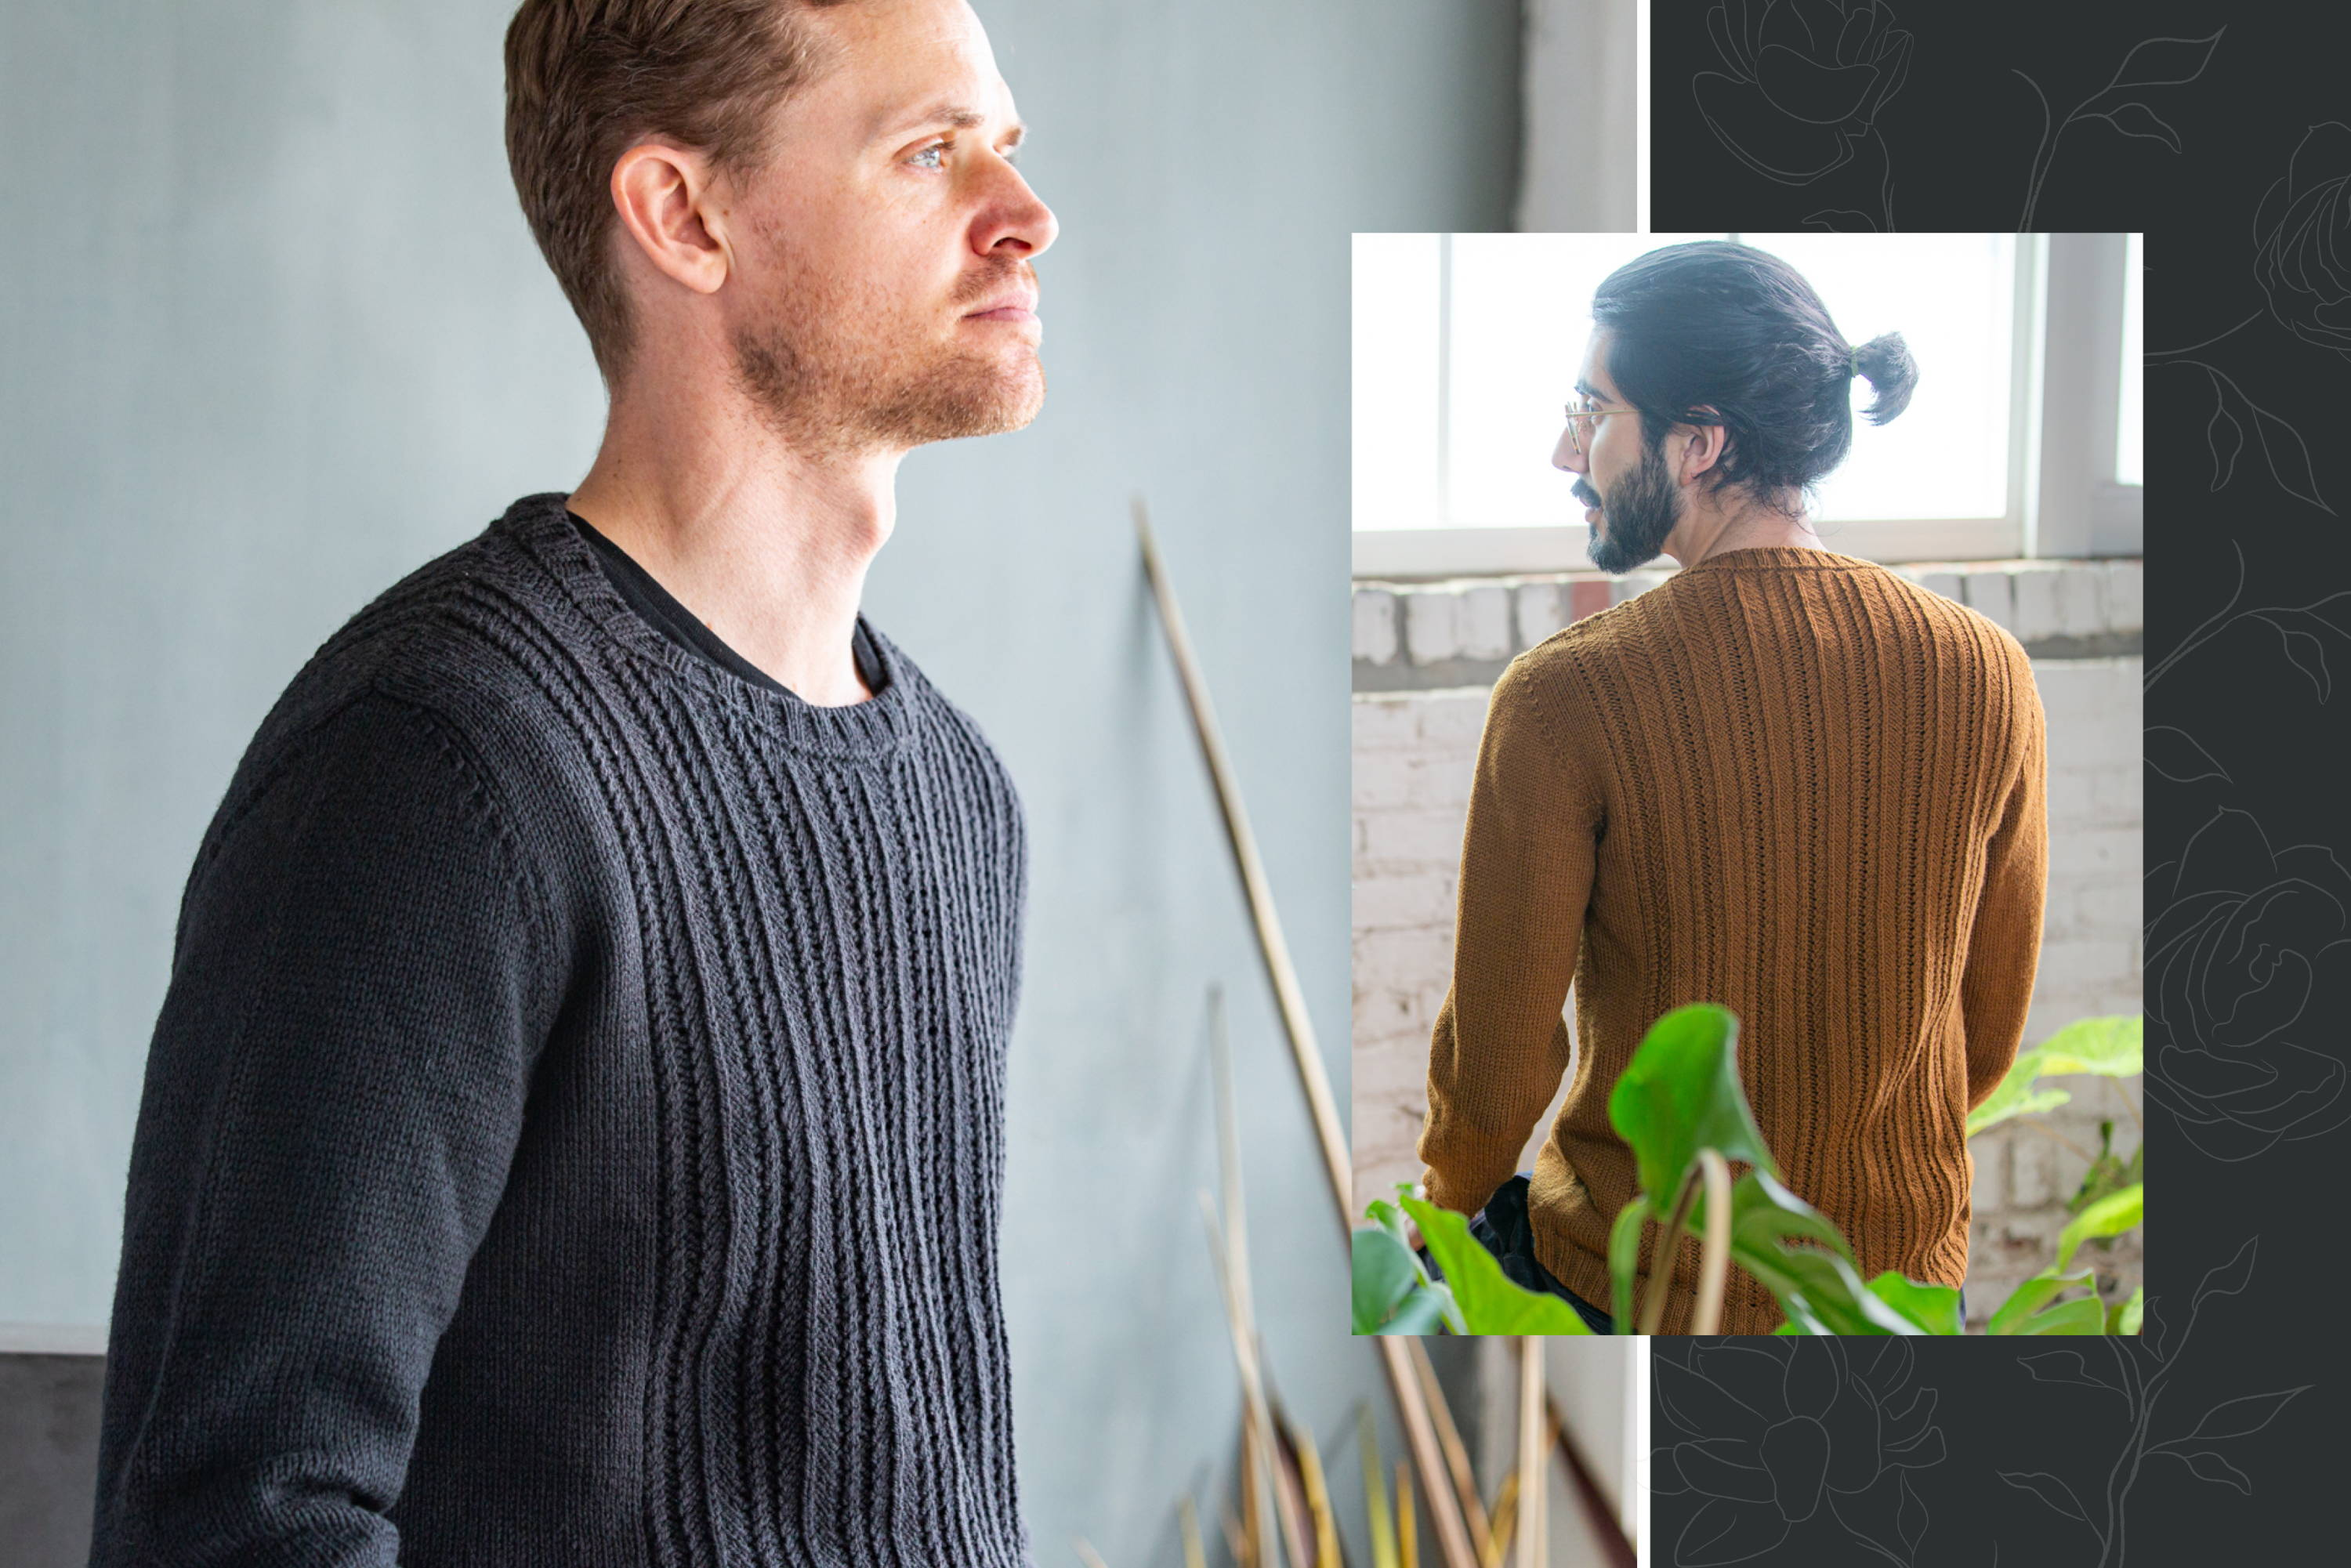 Image of Brian modeling Haskins in Porter left, Omar modeling Haskins in Burnished back view right